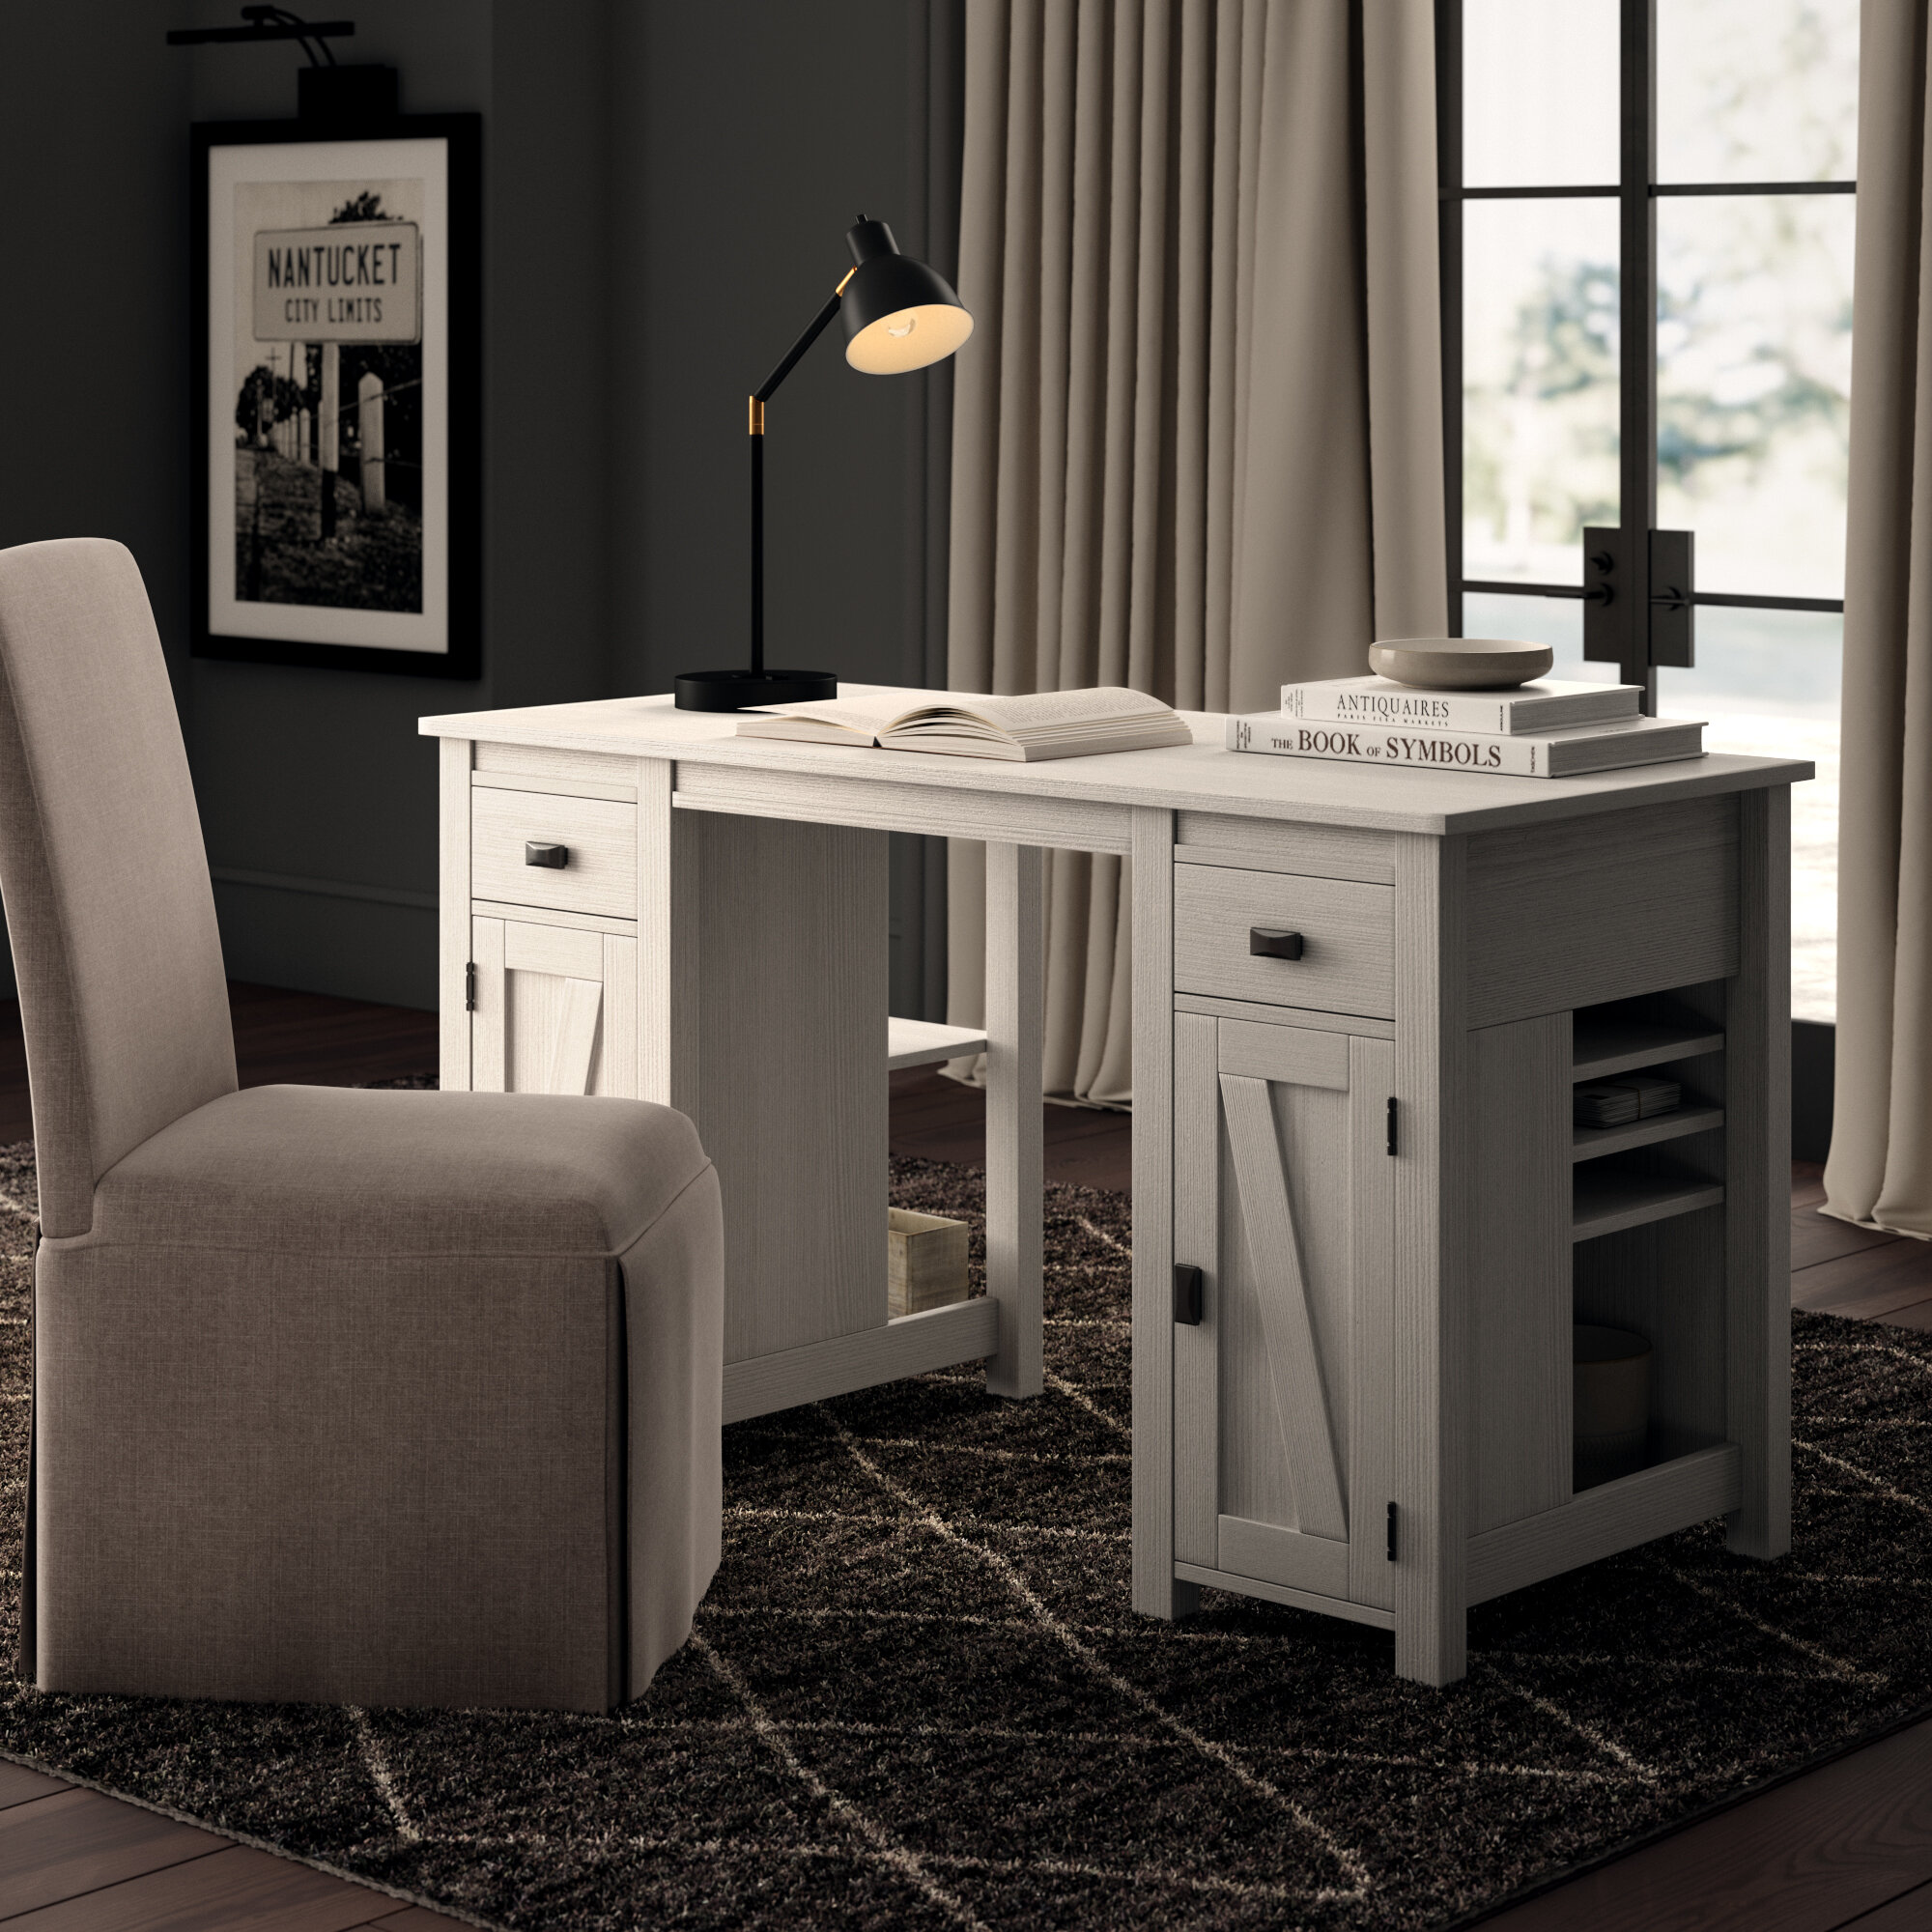 Wayfair Storage Craft Sewing Tables You Ll Love In 2021